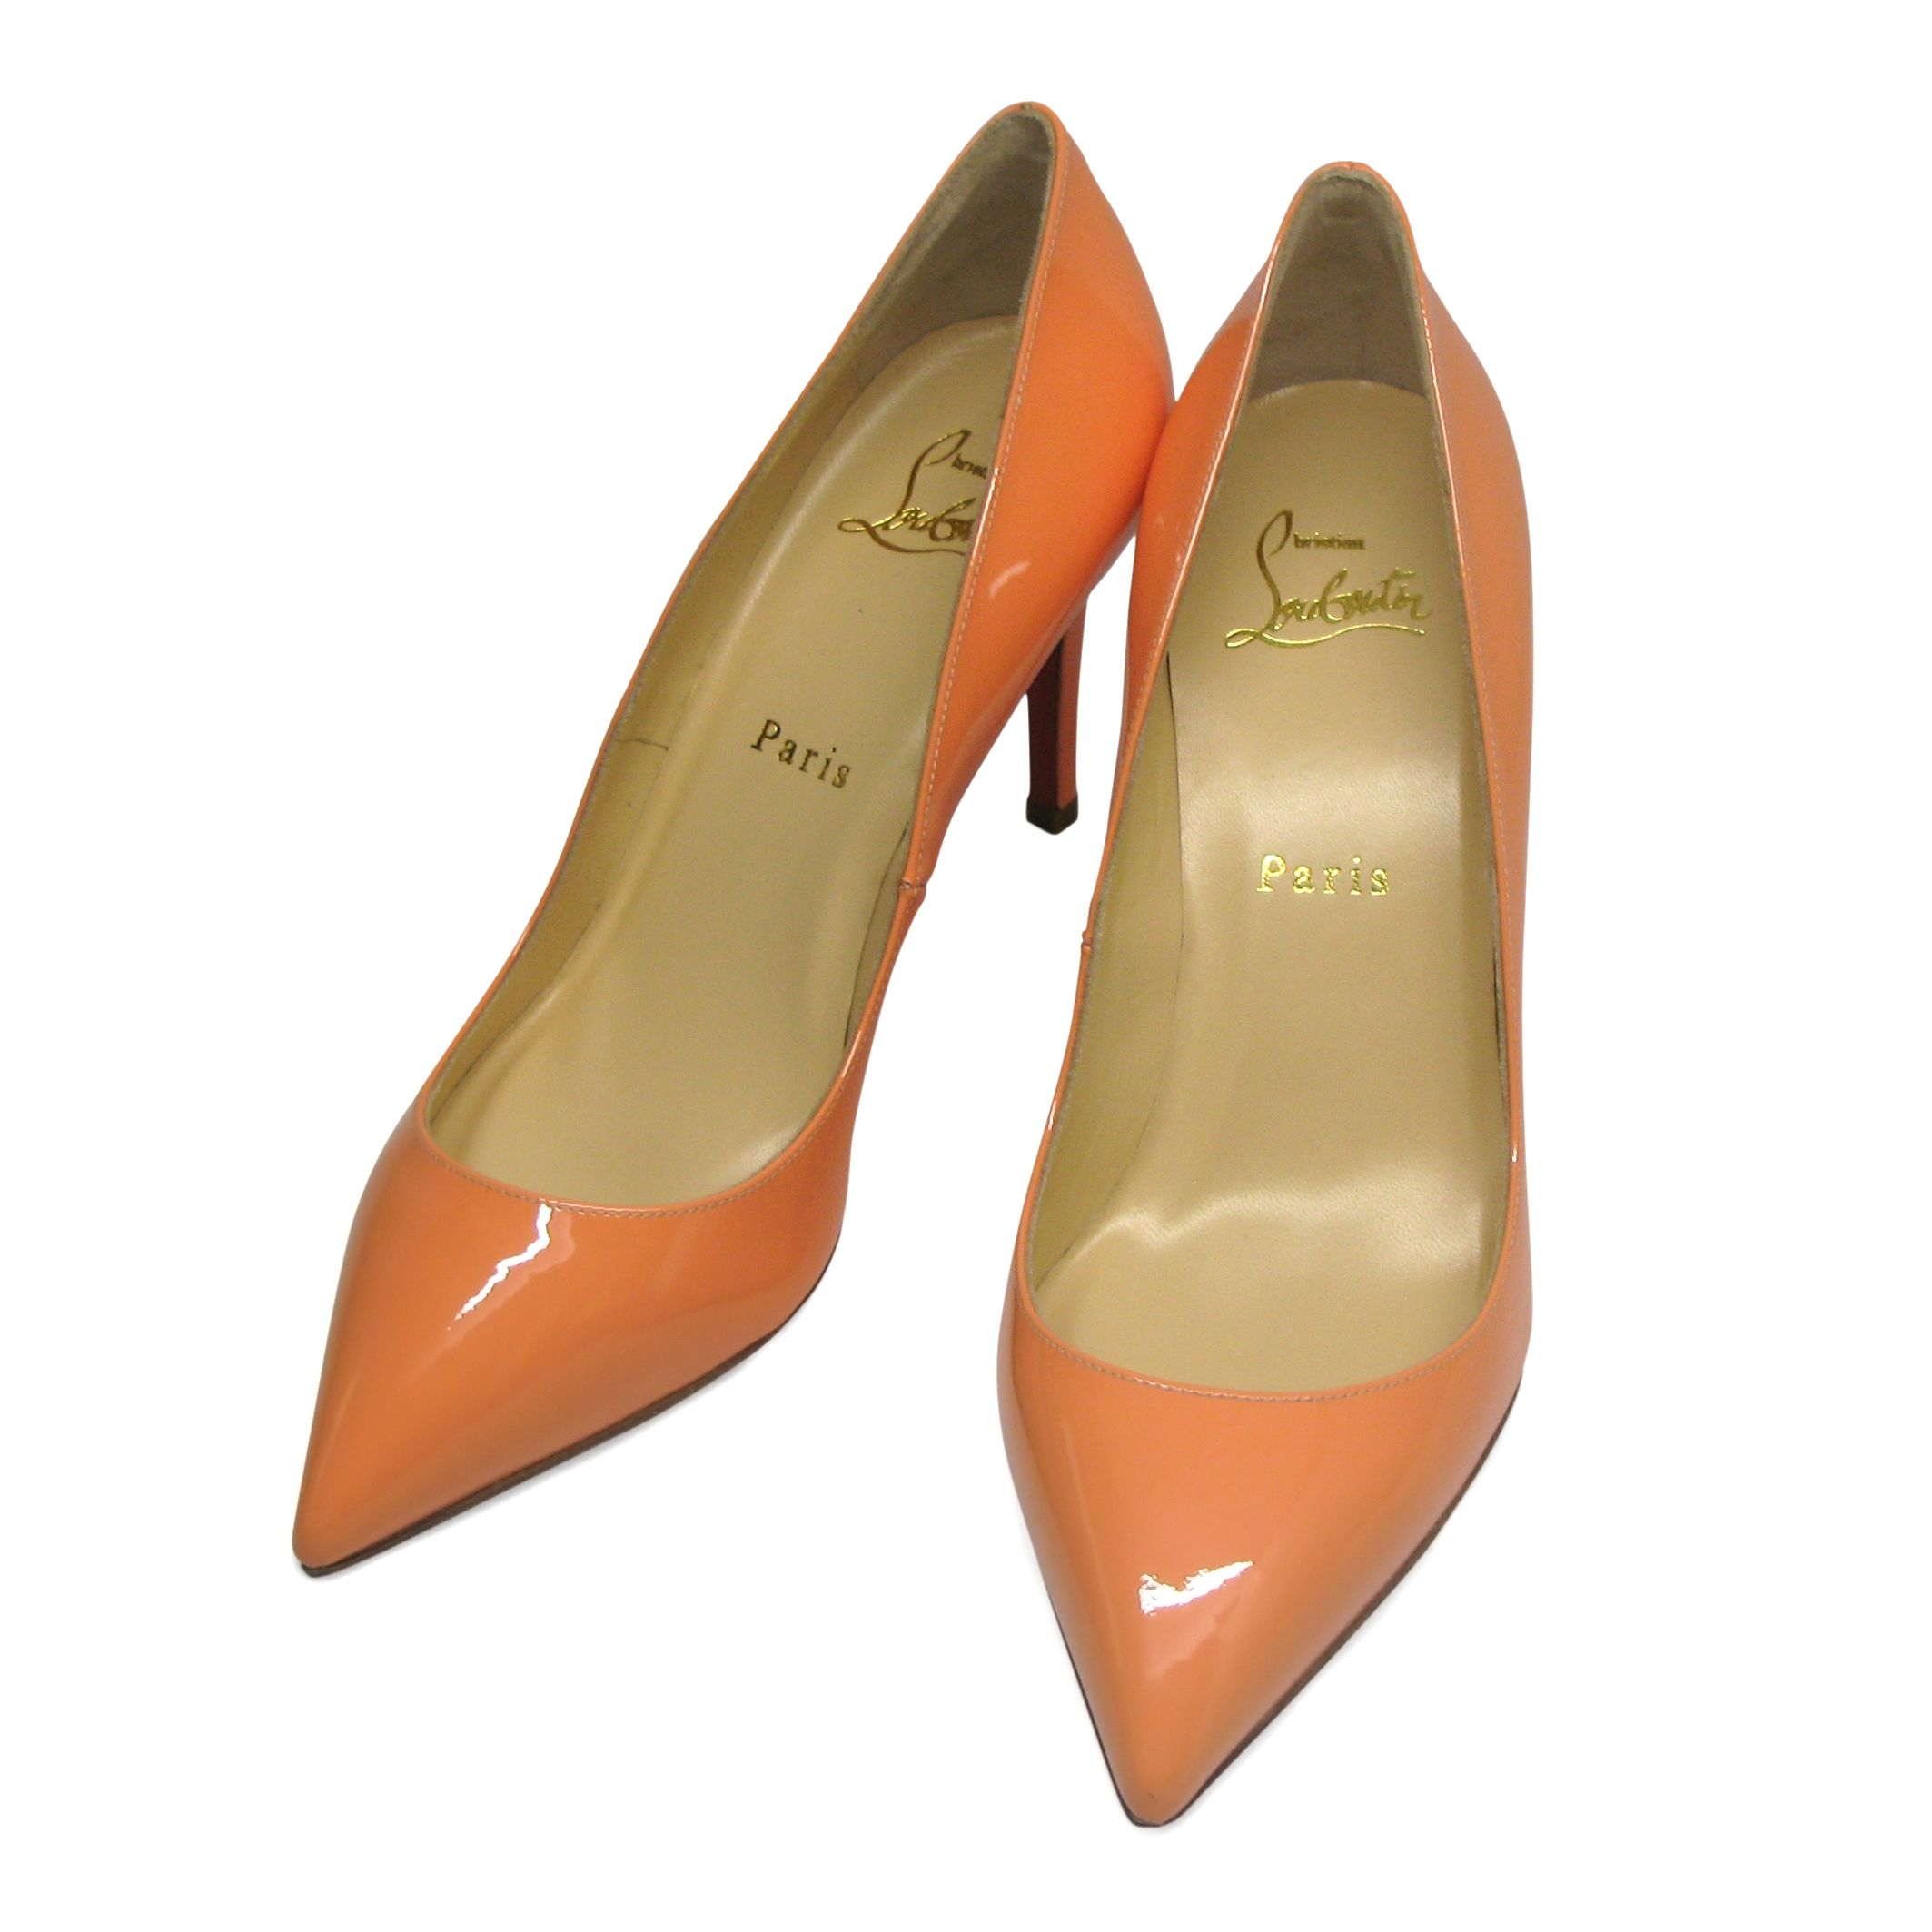 b63174f46486 Very impressive Christian Louboutin point-toe Pigalle heels in mango (light  orange) color. Crafted from sleek patent-leather